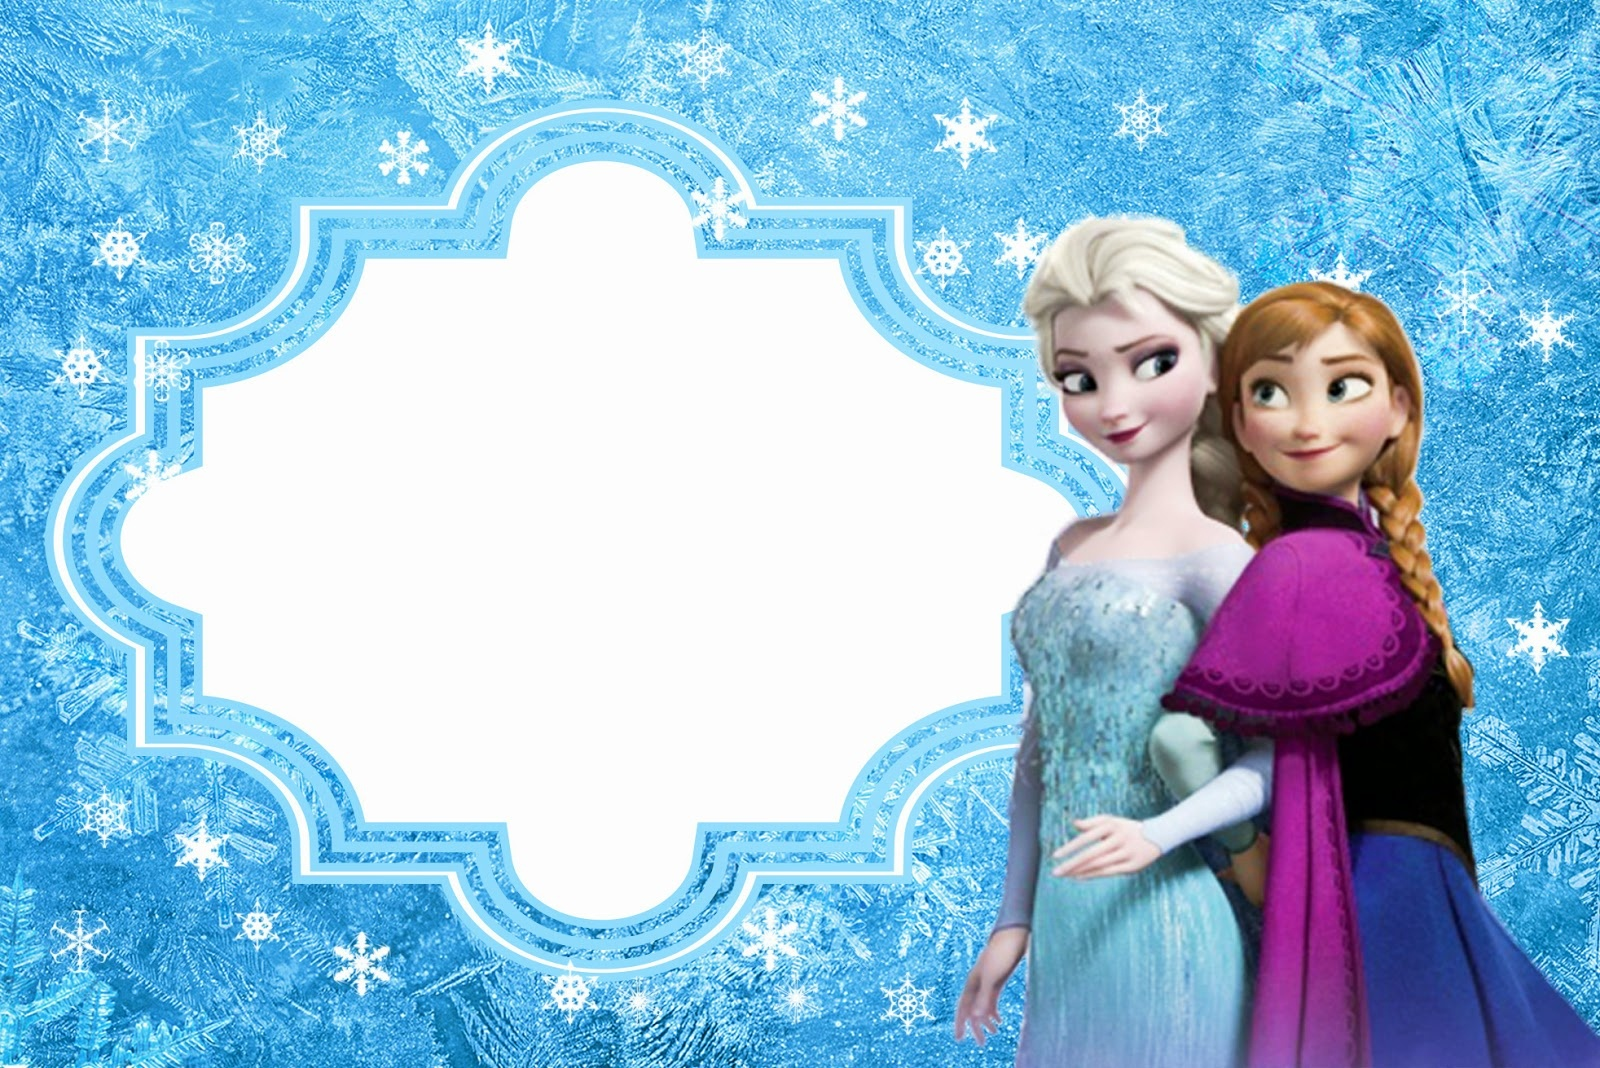 Frozen: Free Printable Cards Or Party Invitations. - Oh My Fiesta - Frozen Invitations Printables Free